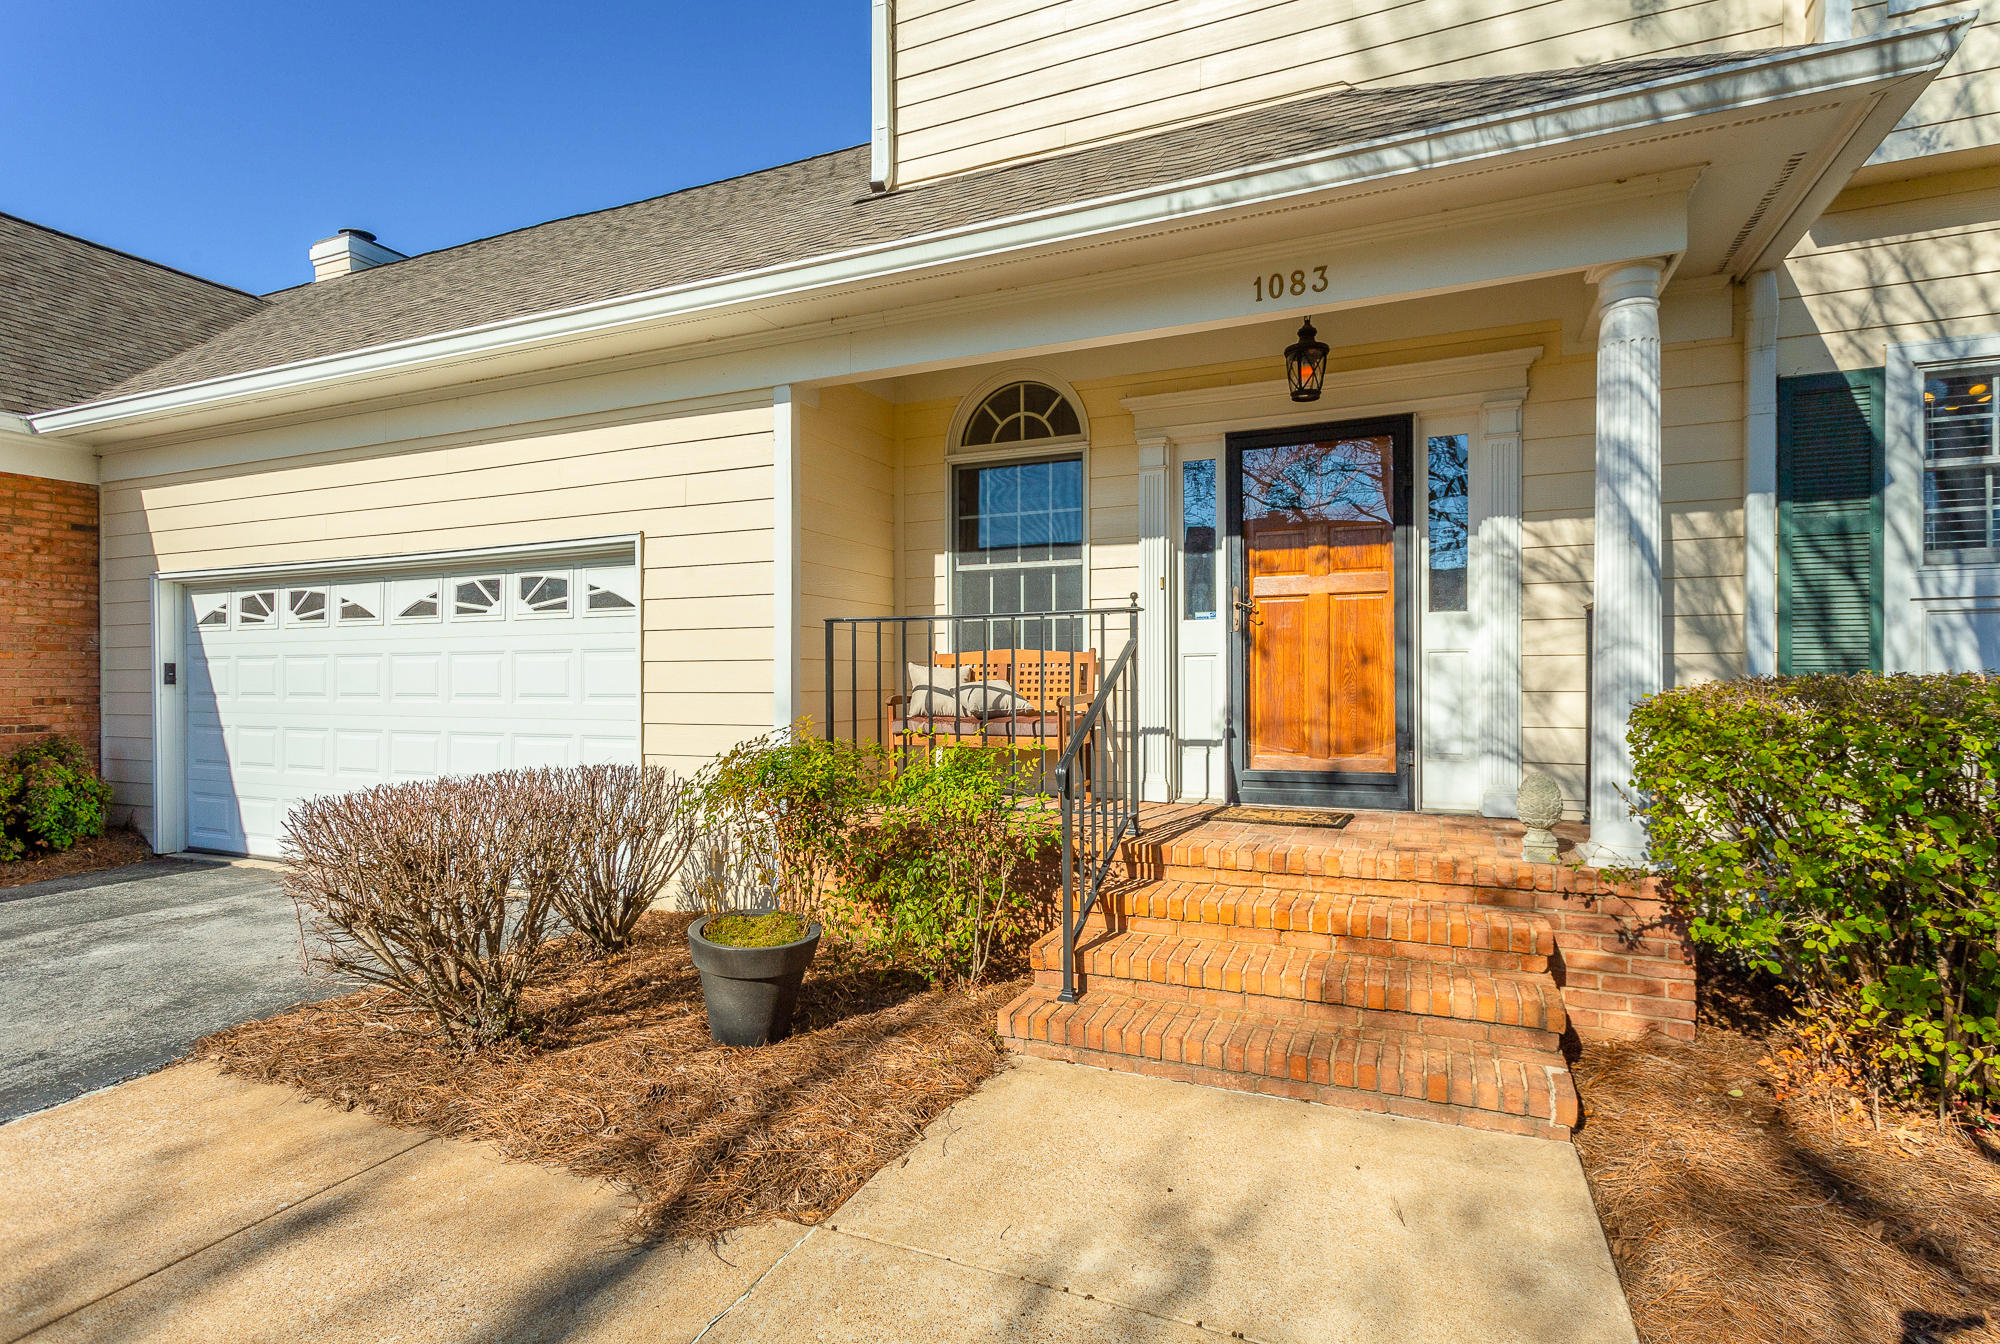 1083 Constitution Dr, Chattanooga, TN 37405